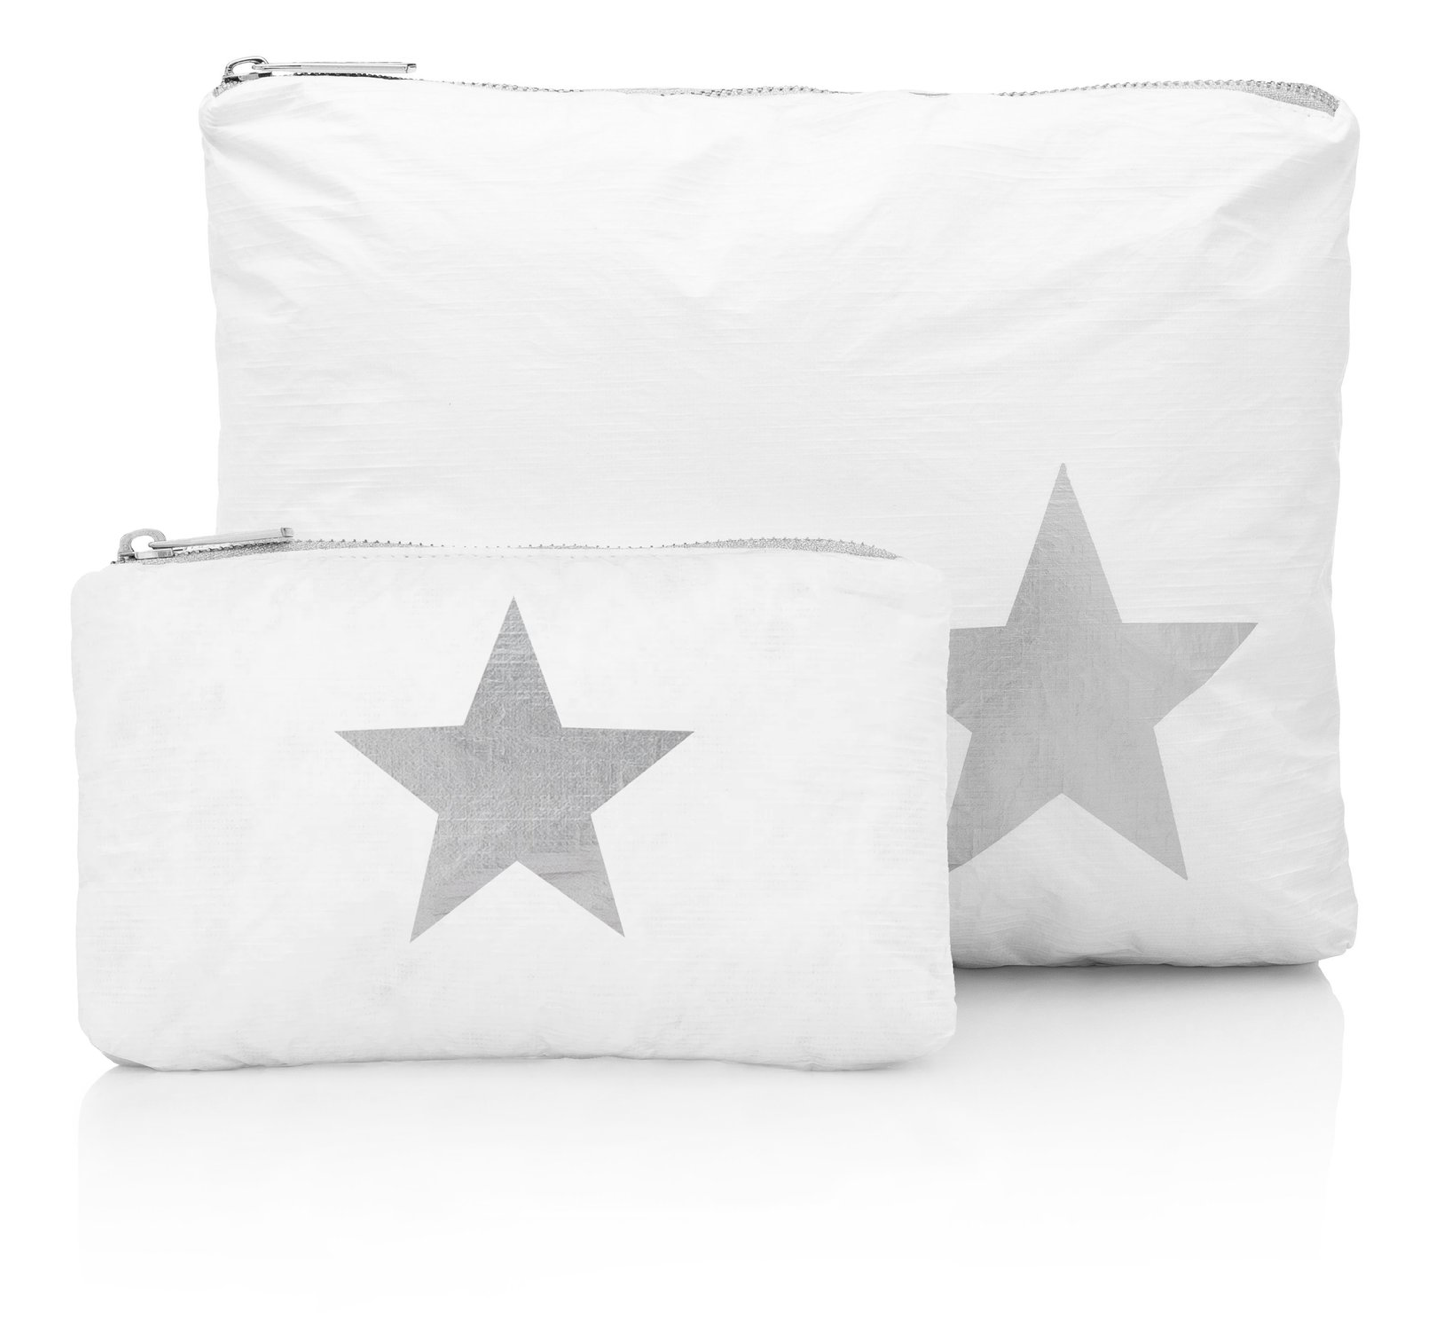 2PC. White with Silver Heart